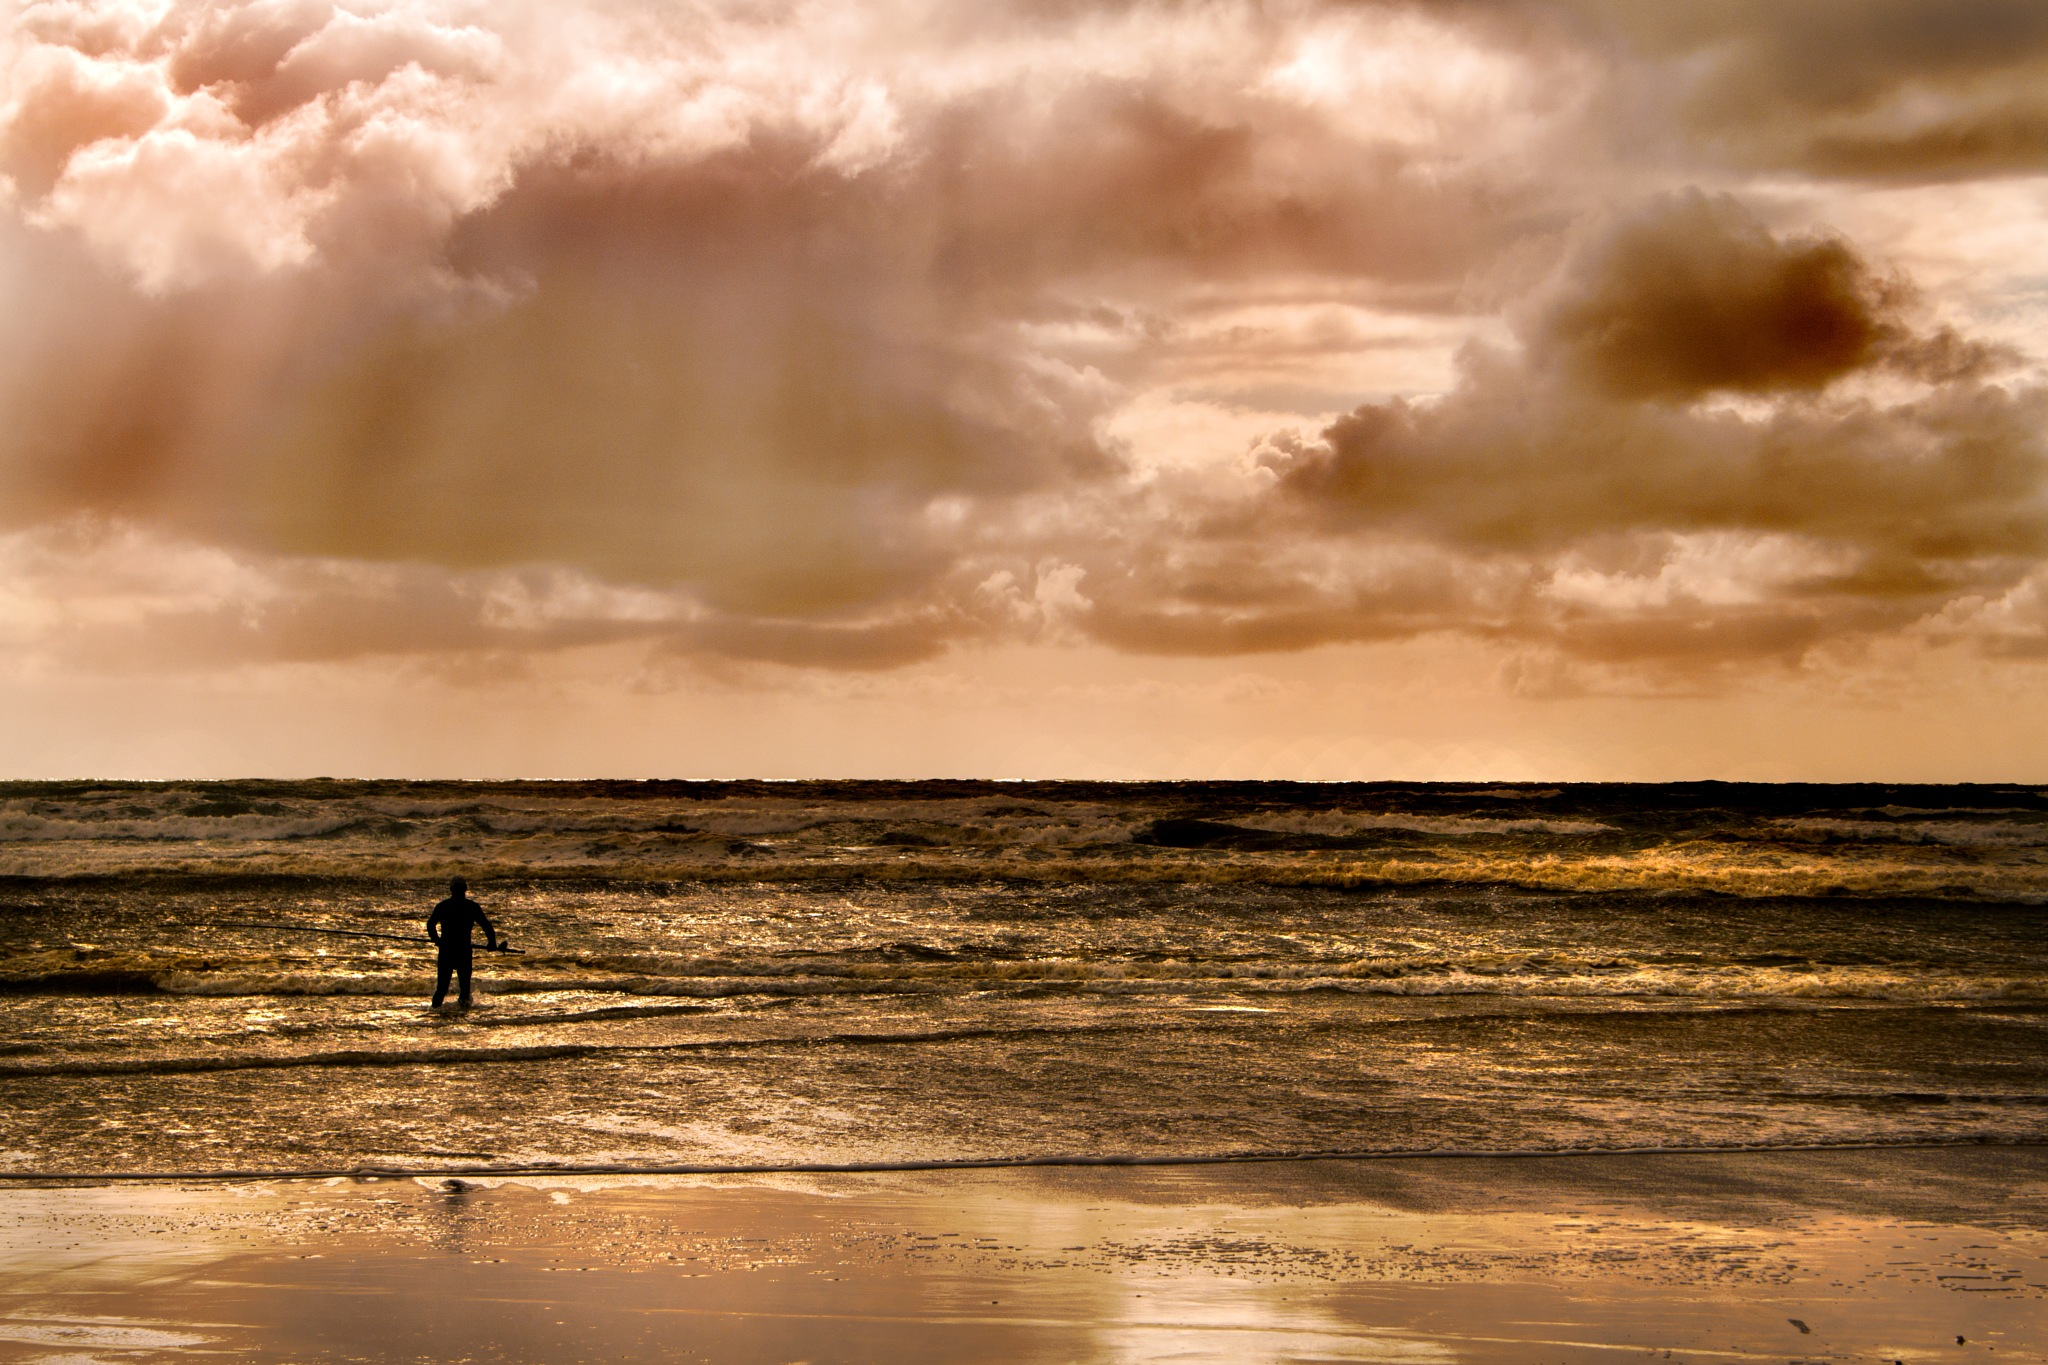 Fisherman and clouds by Nauta Piscatorque